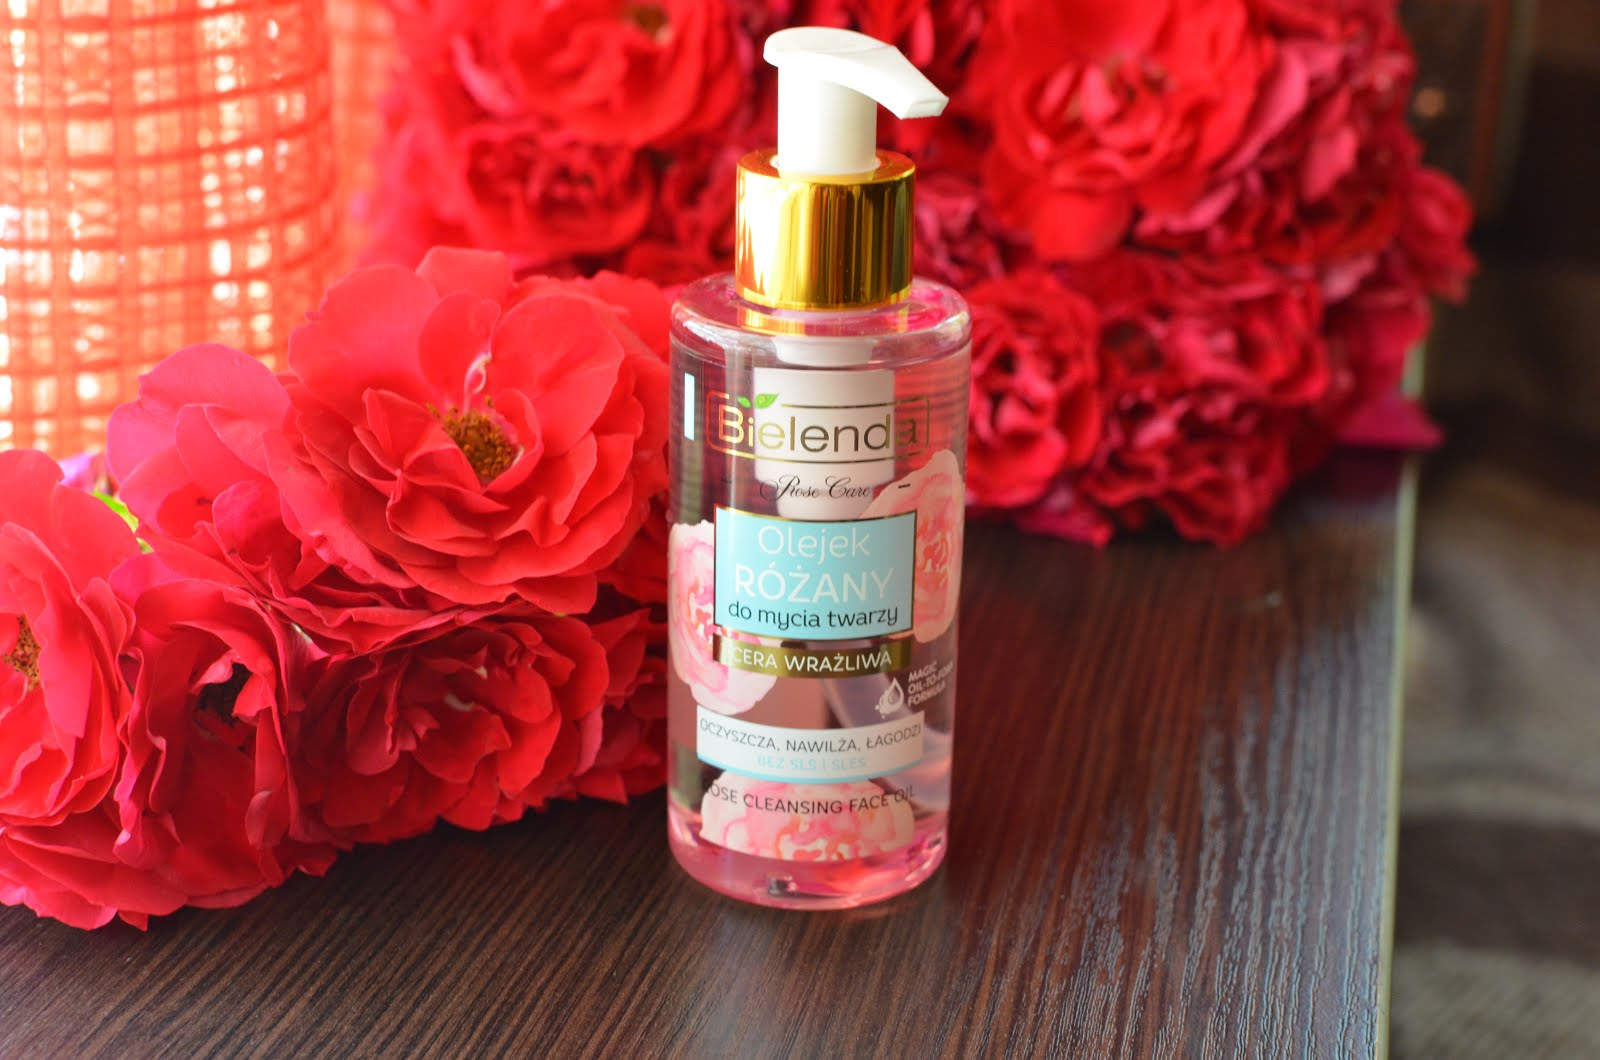 Bielenda Rose Care Cleansing Face Oil For Sensitive Skin Розовое масло для умывания